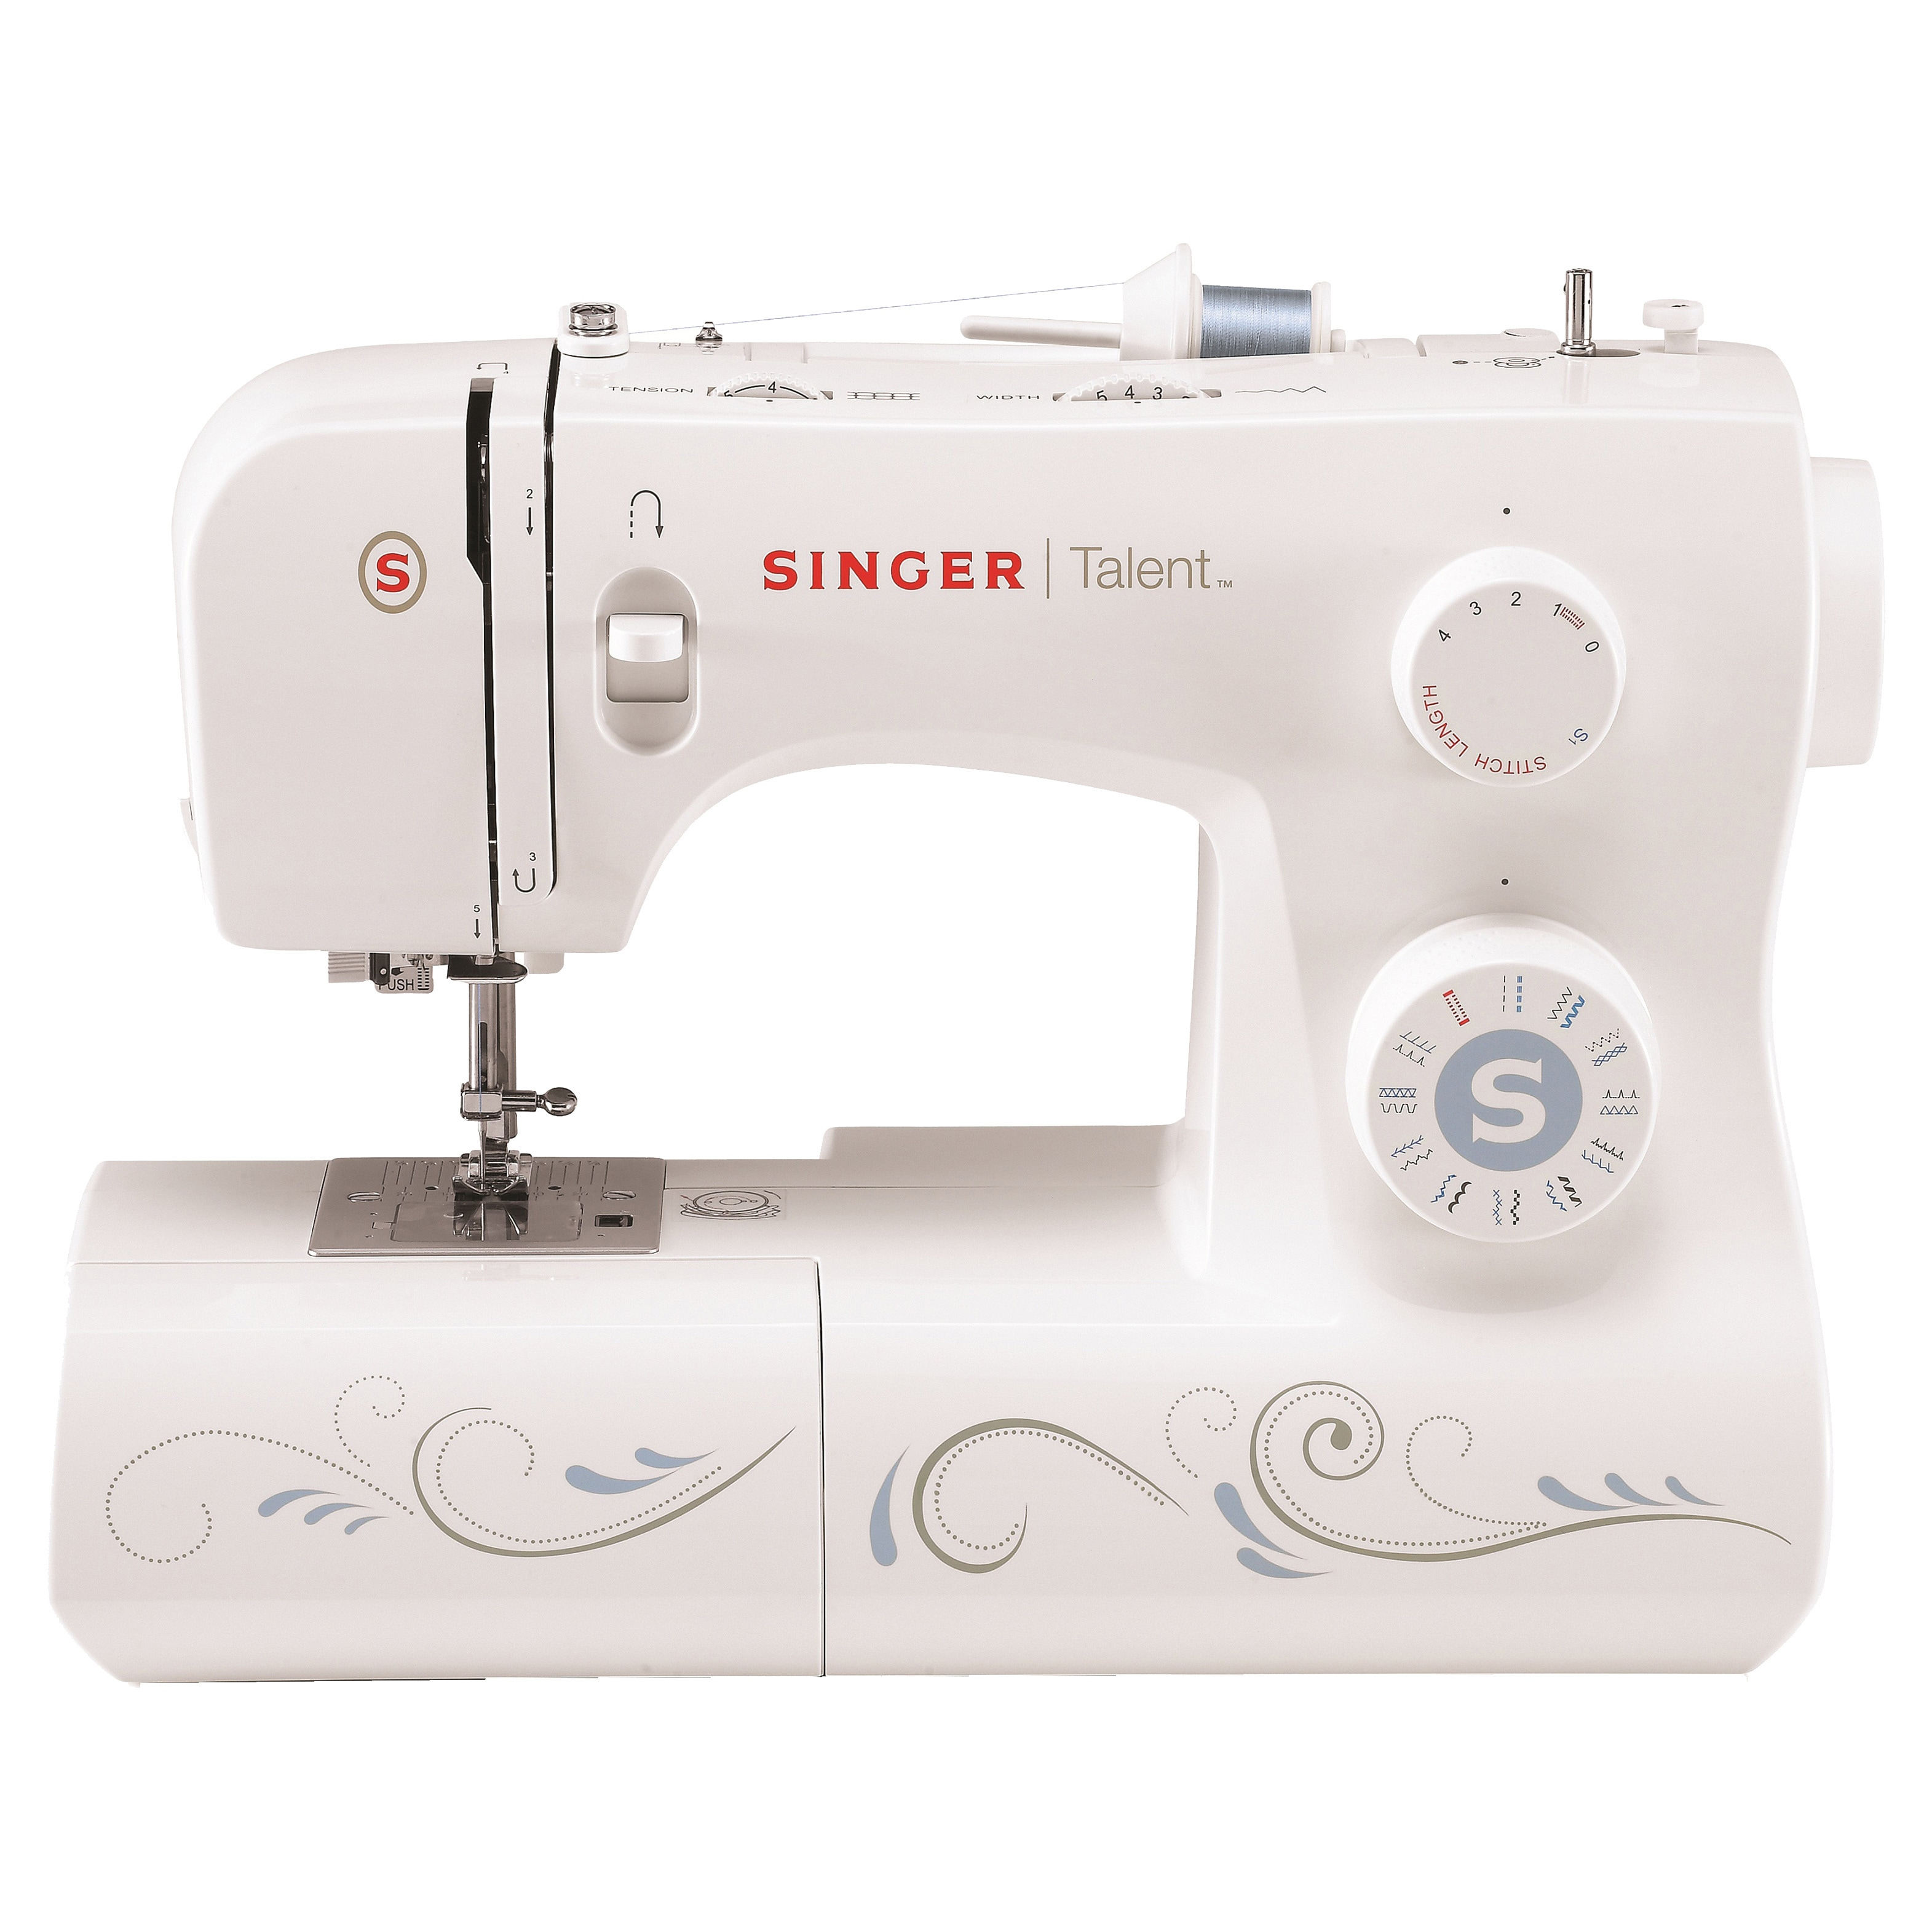 SINGER SEWING CO. Talent 3323 23-Stitch Sewing Machine, G...